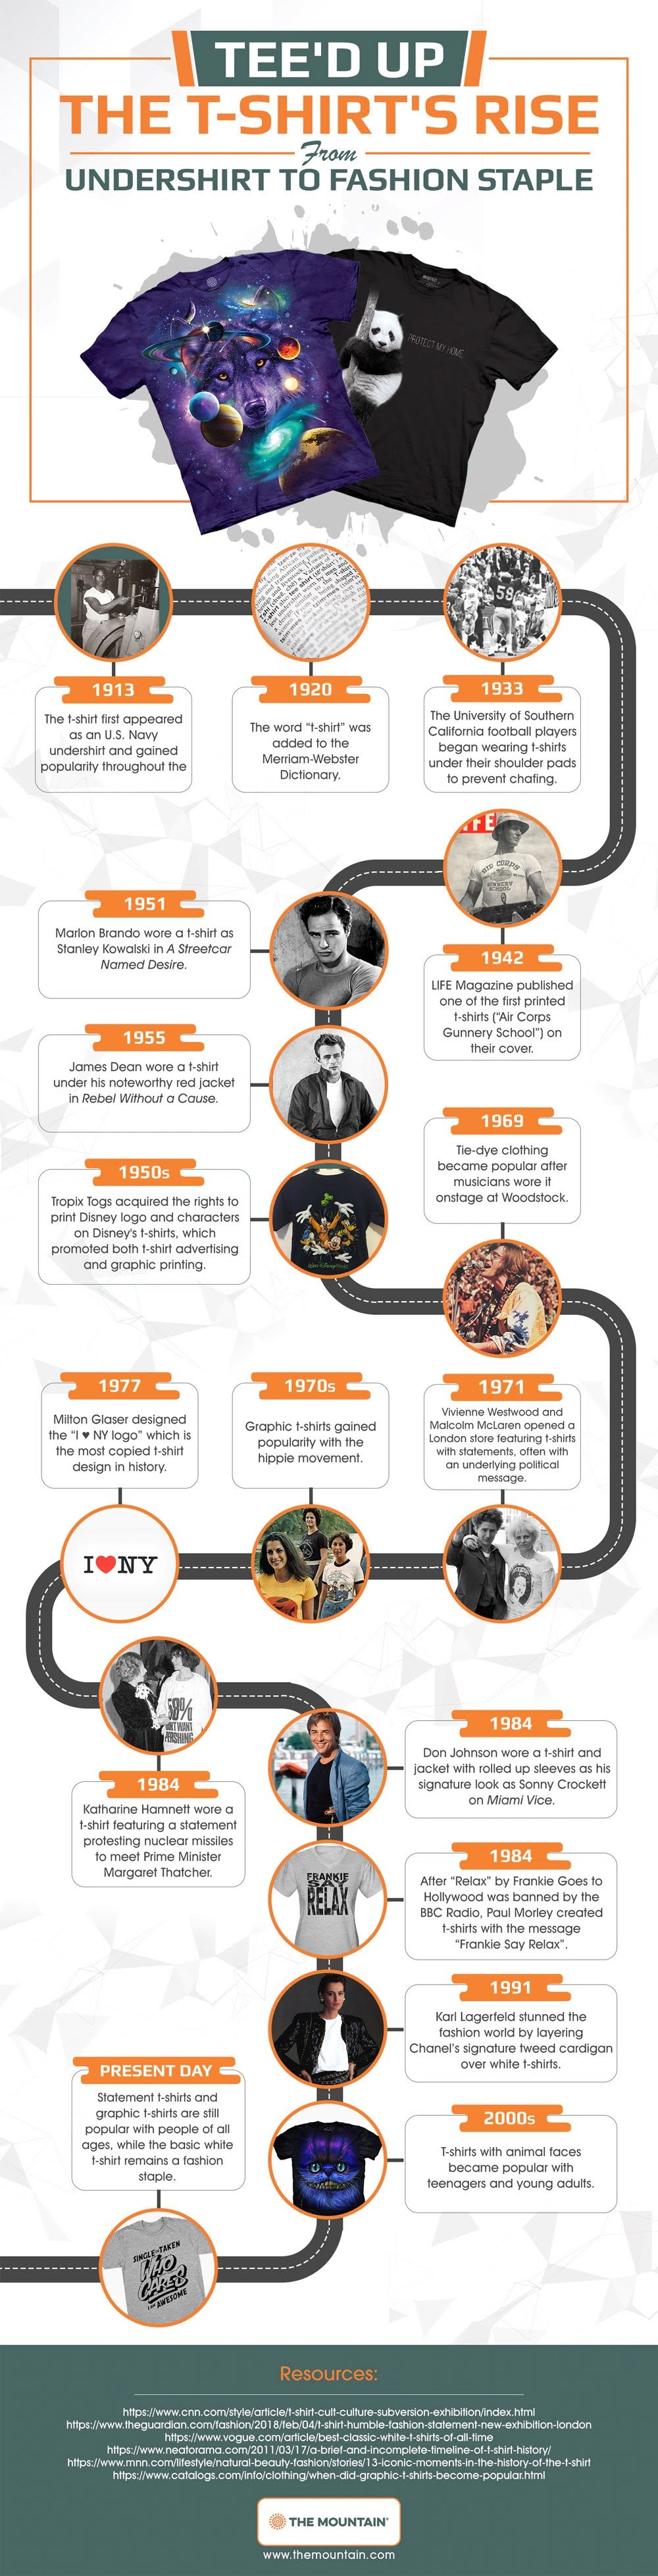 Tee'd Up: The T-Shirt's Rise From Undershirt to Fashion #infographic